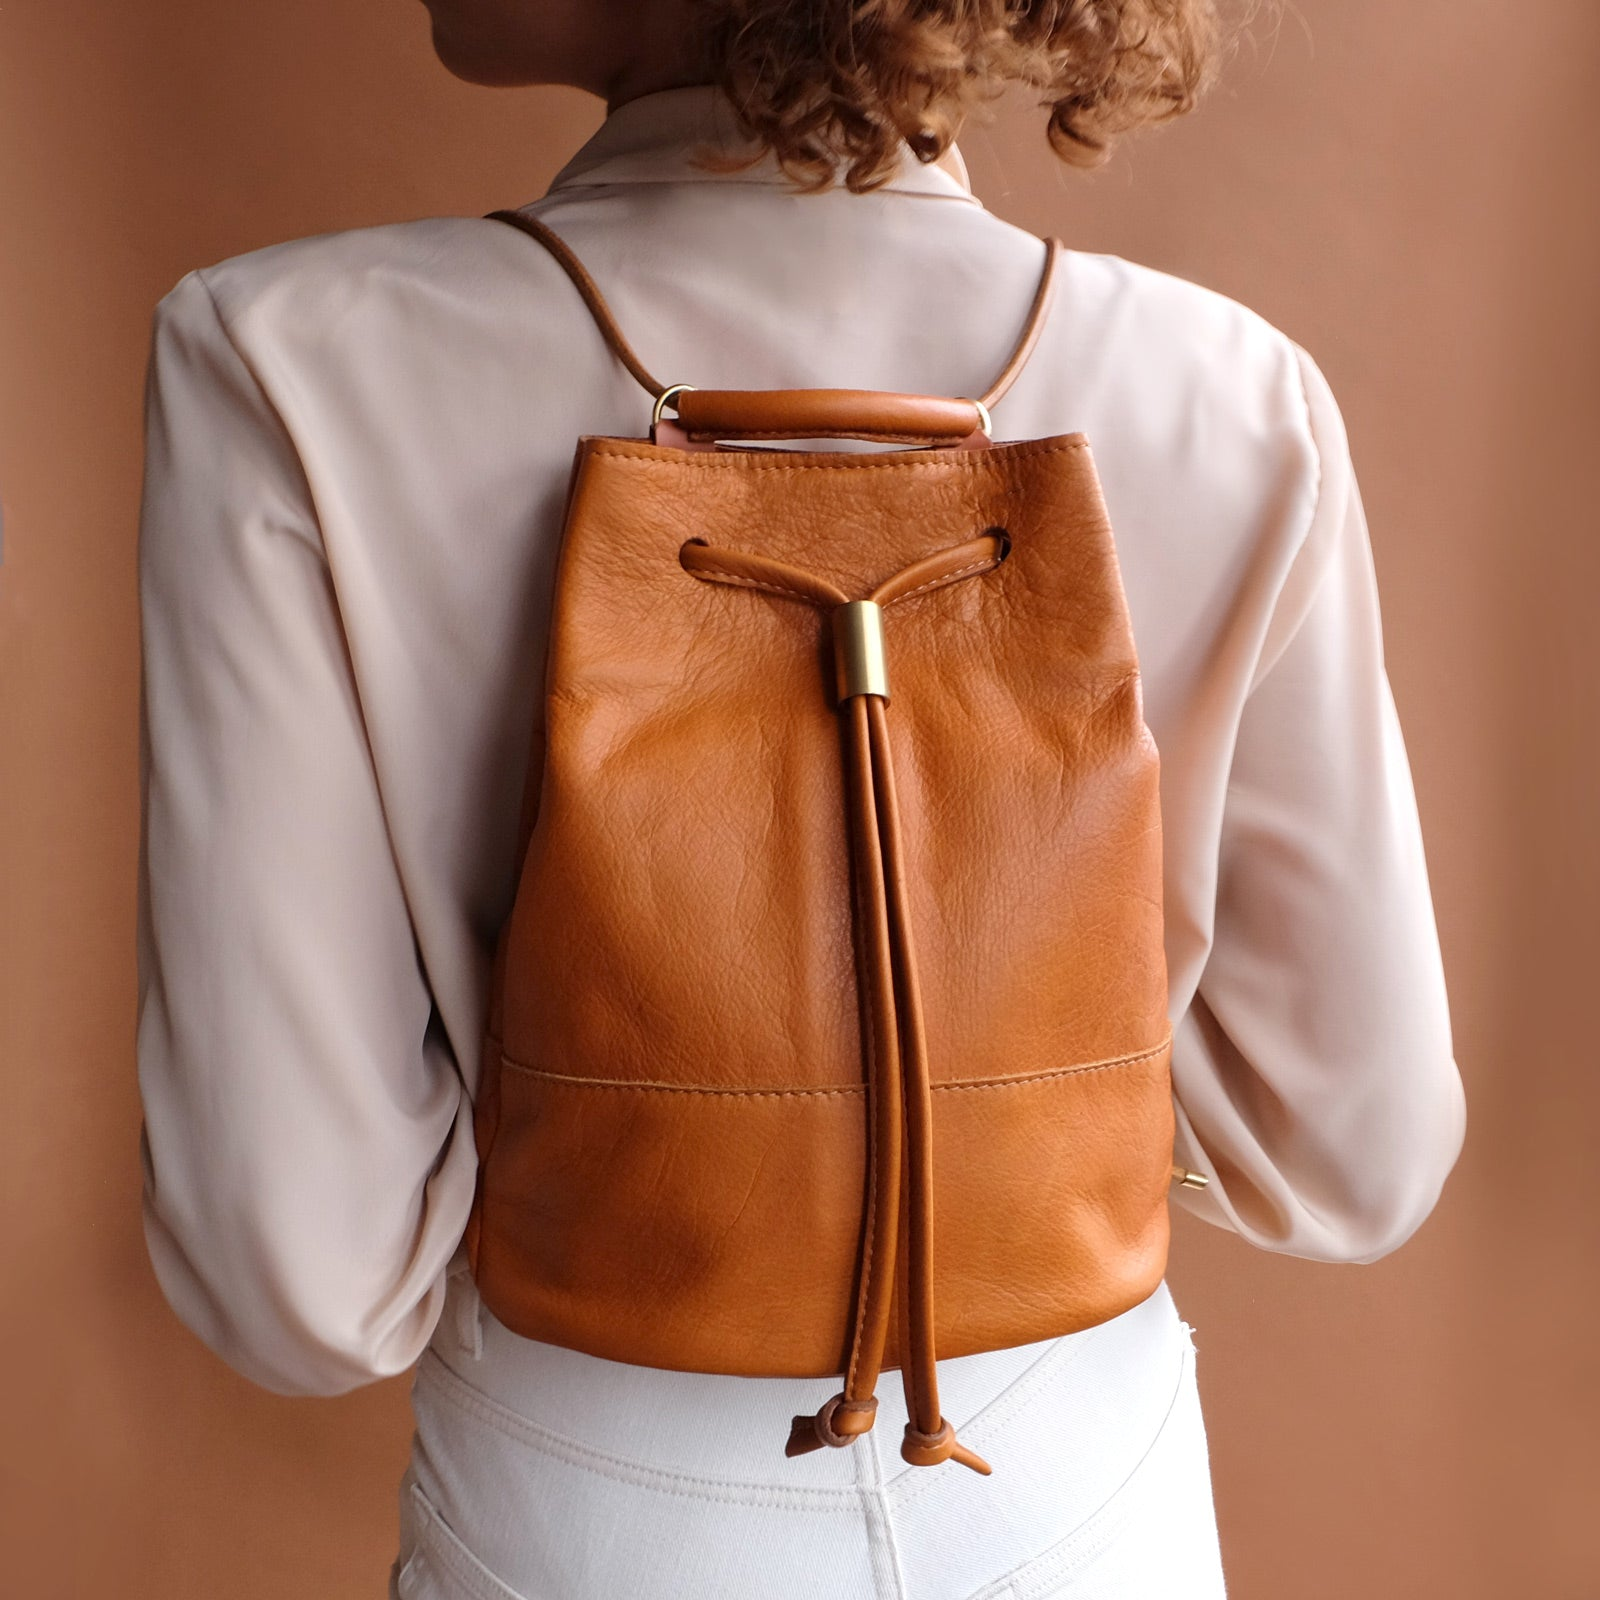 Lagoa Backpack - Caramel Tan